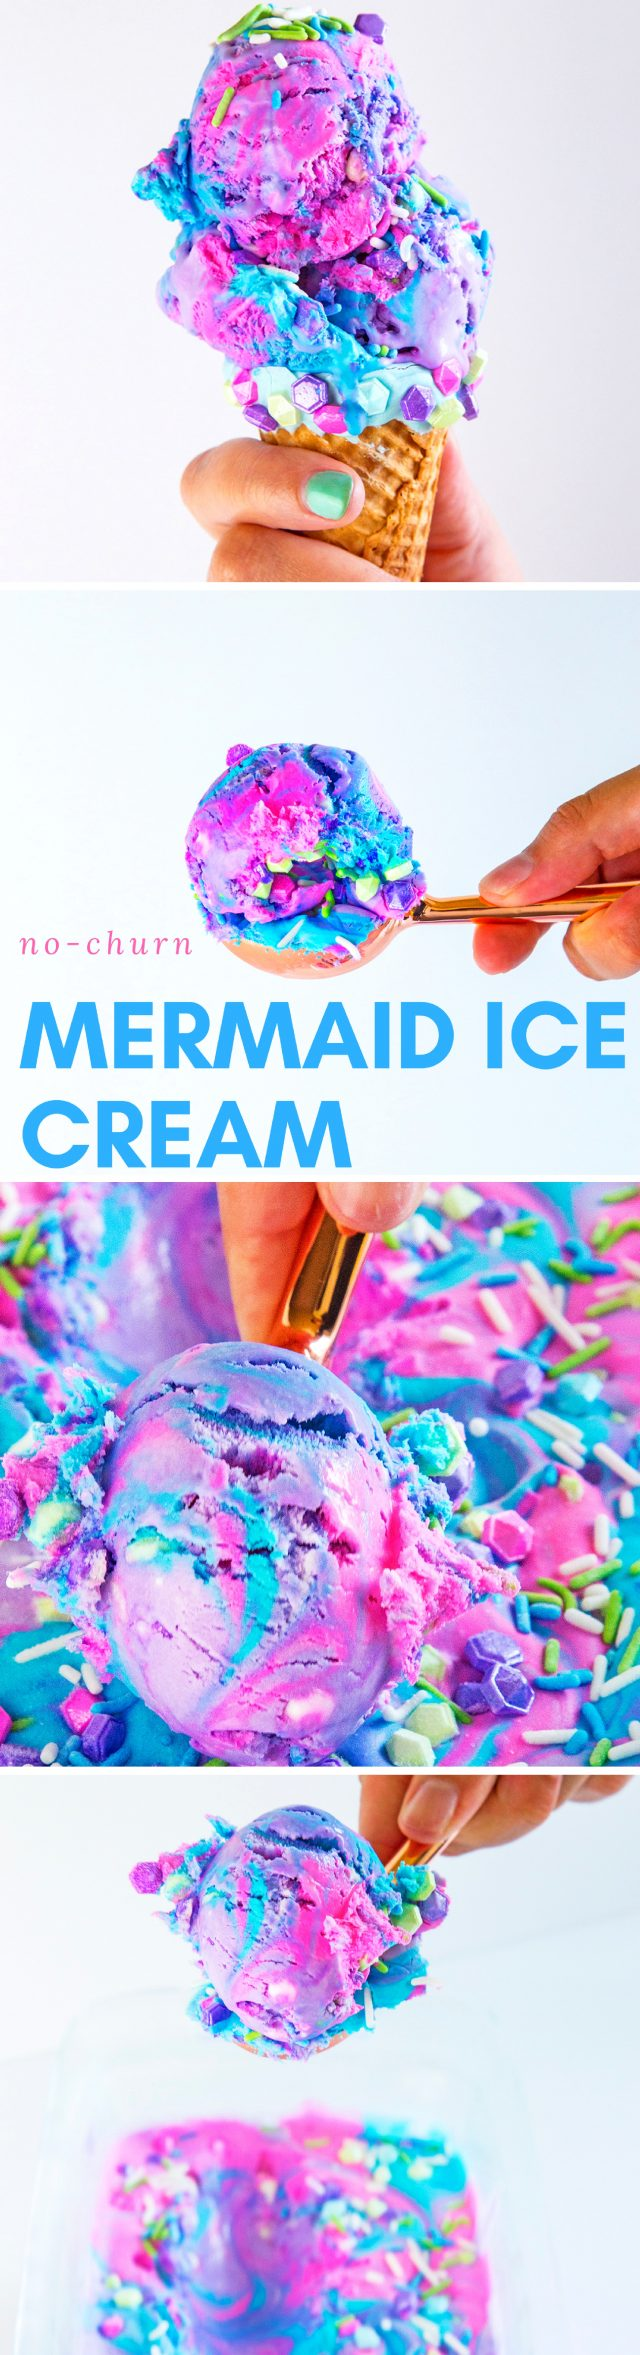 Whether it's in a cone or sundae style, this easy homemade NO-CHURN mermaid ice cream cone recipe is full of neon color, sprinkles, and magic that is just perfect for a birthday party or just because you love mermaids.